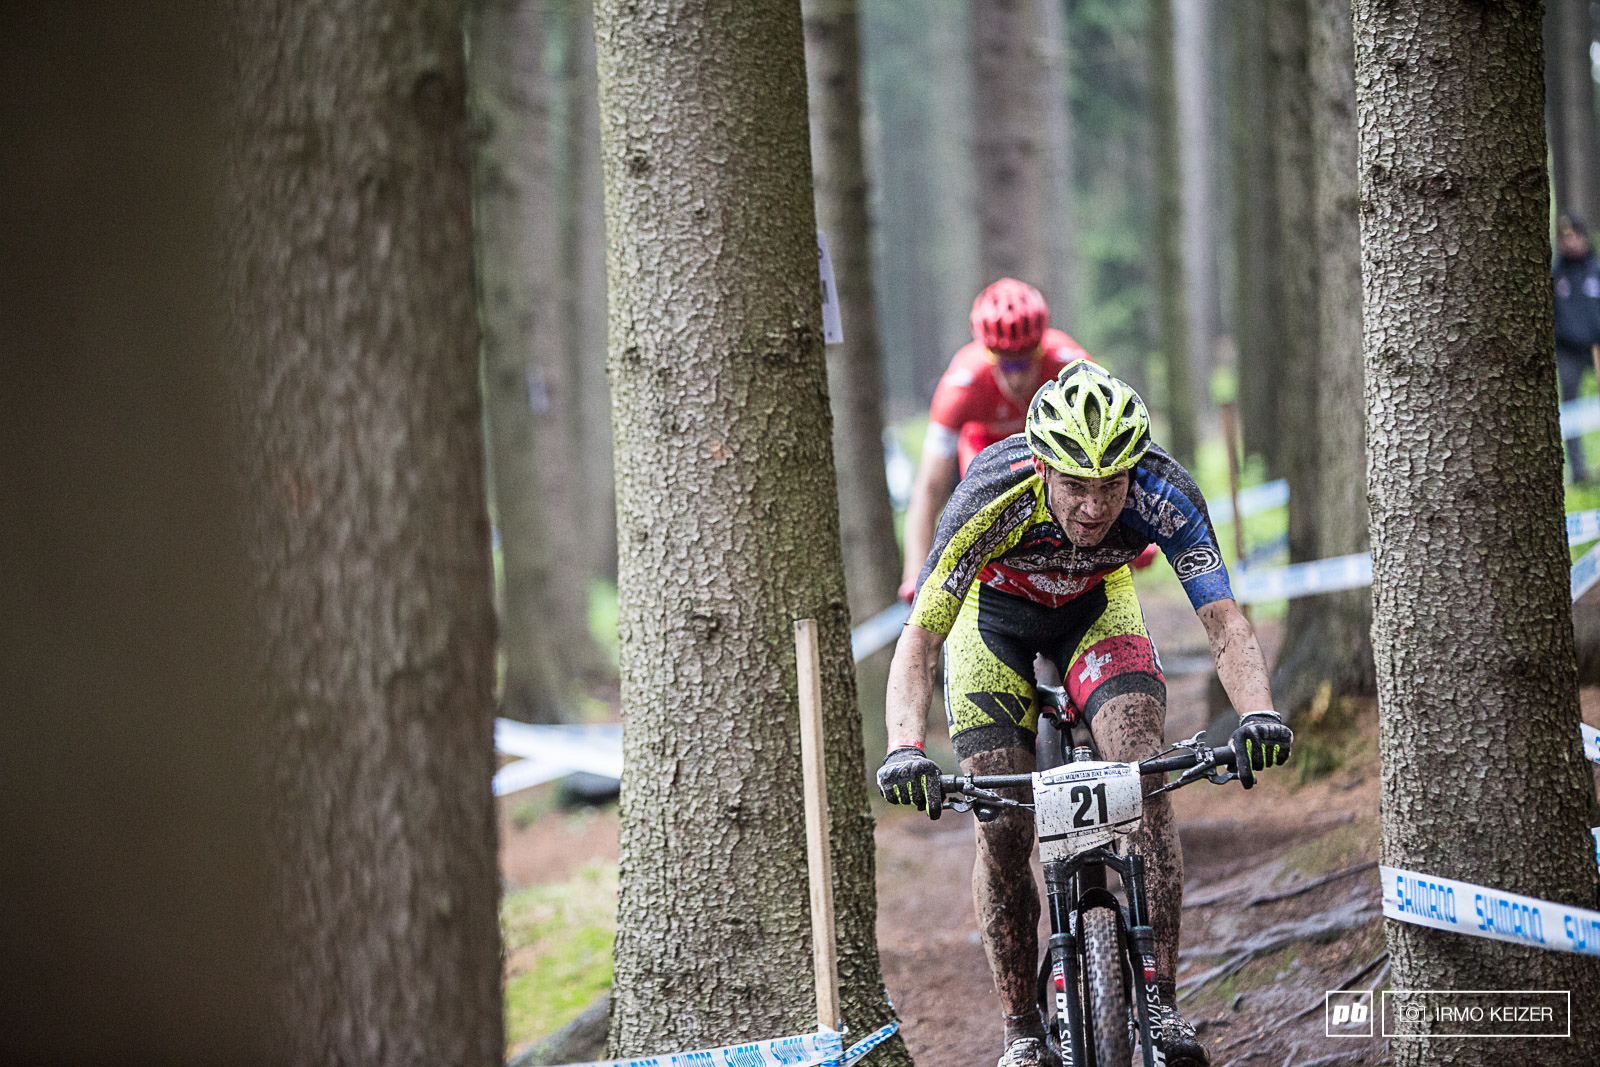 Lars Forster puts the hammer down in the 2nd lap. The Swiss rider battled up front throughout the race.